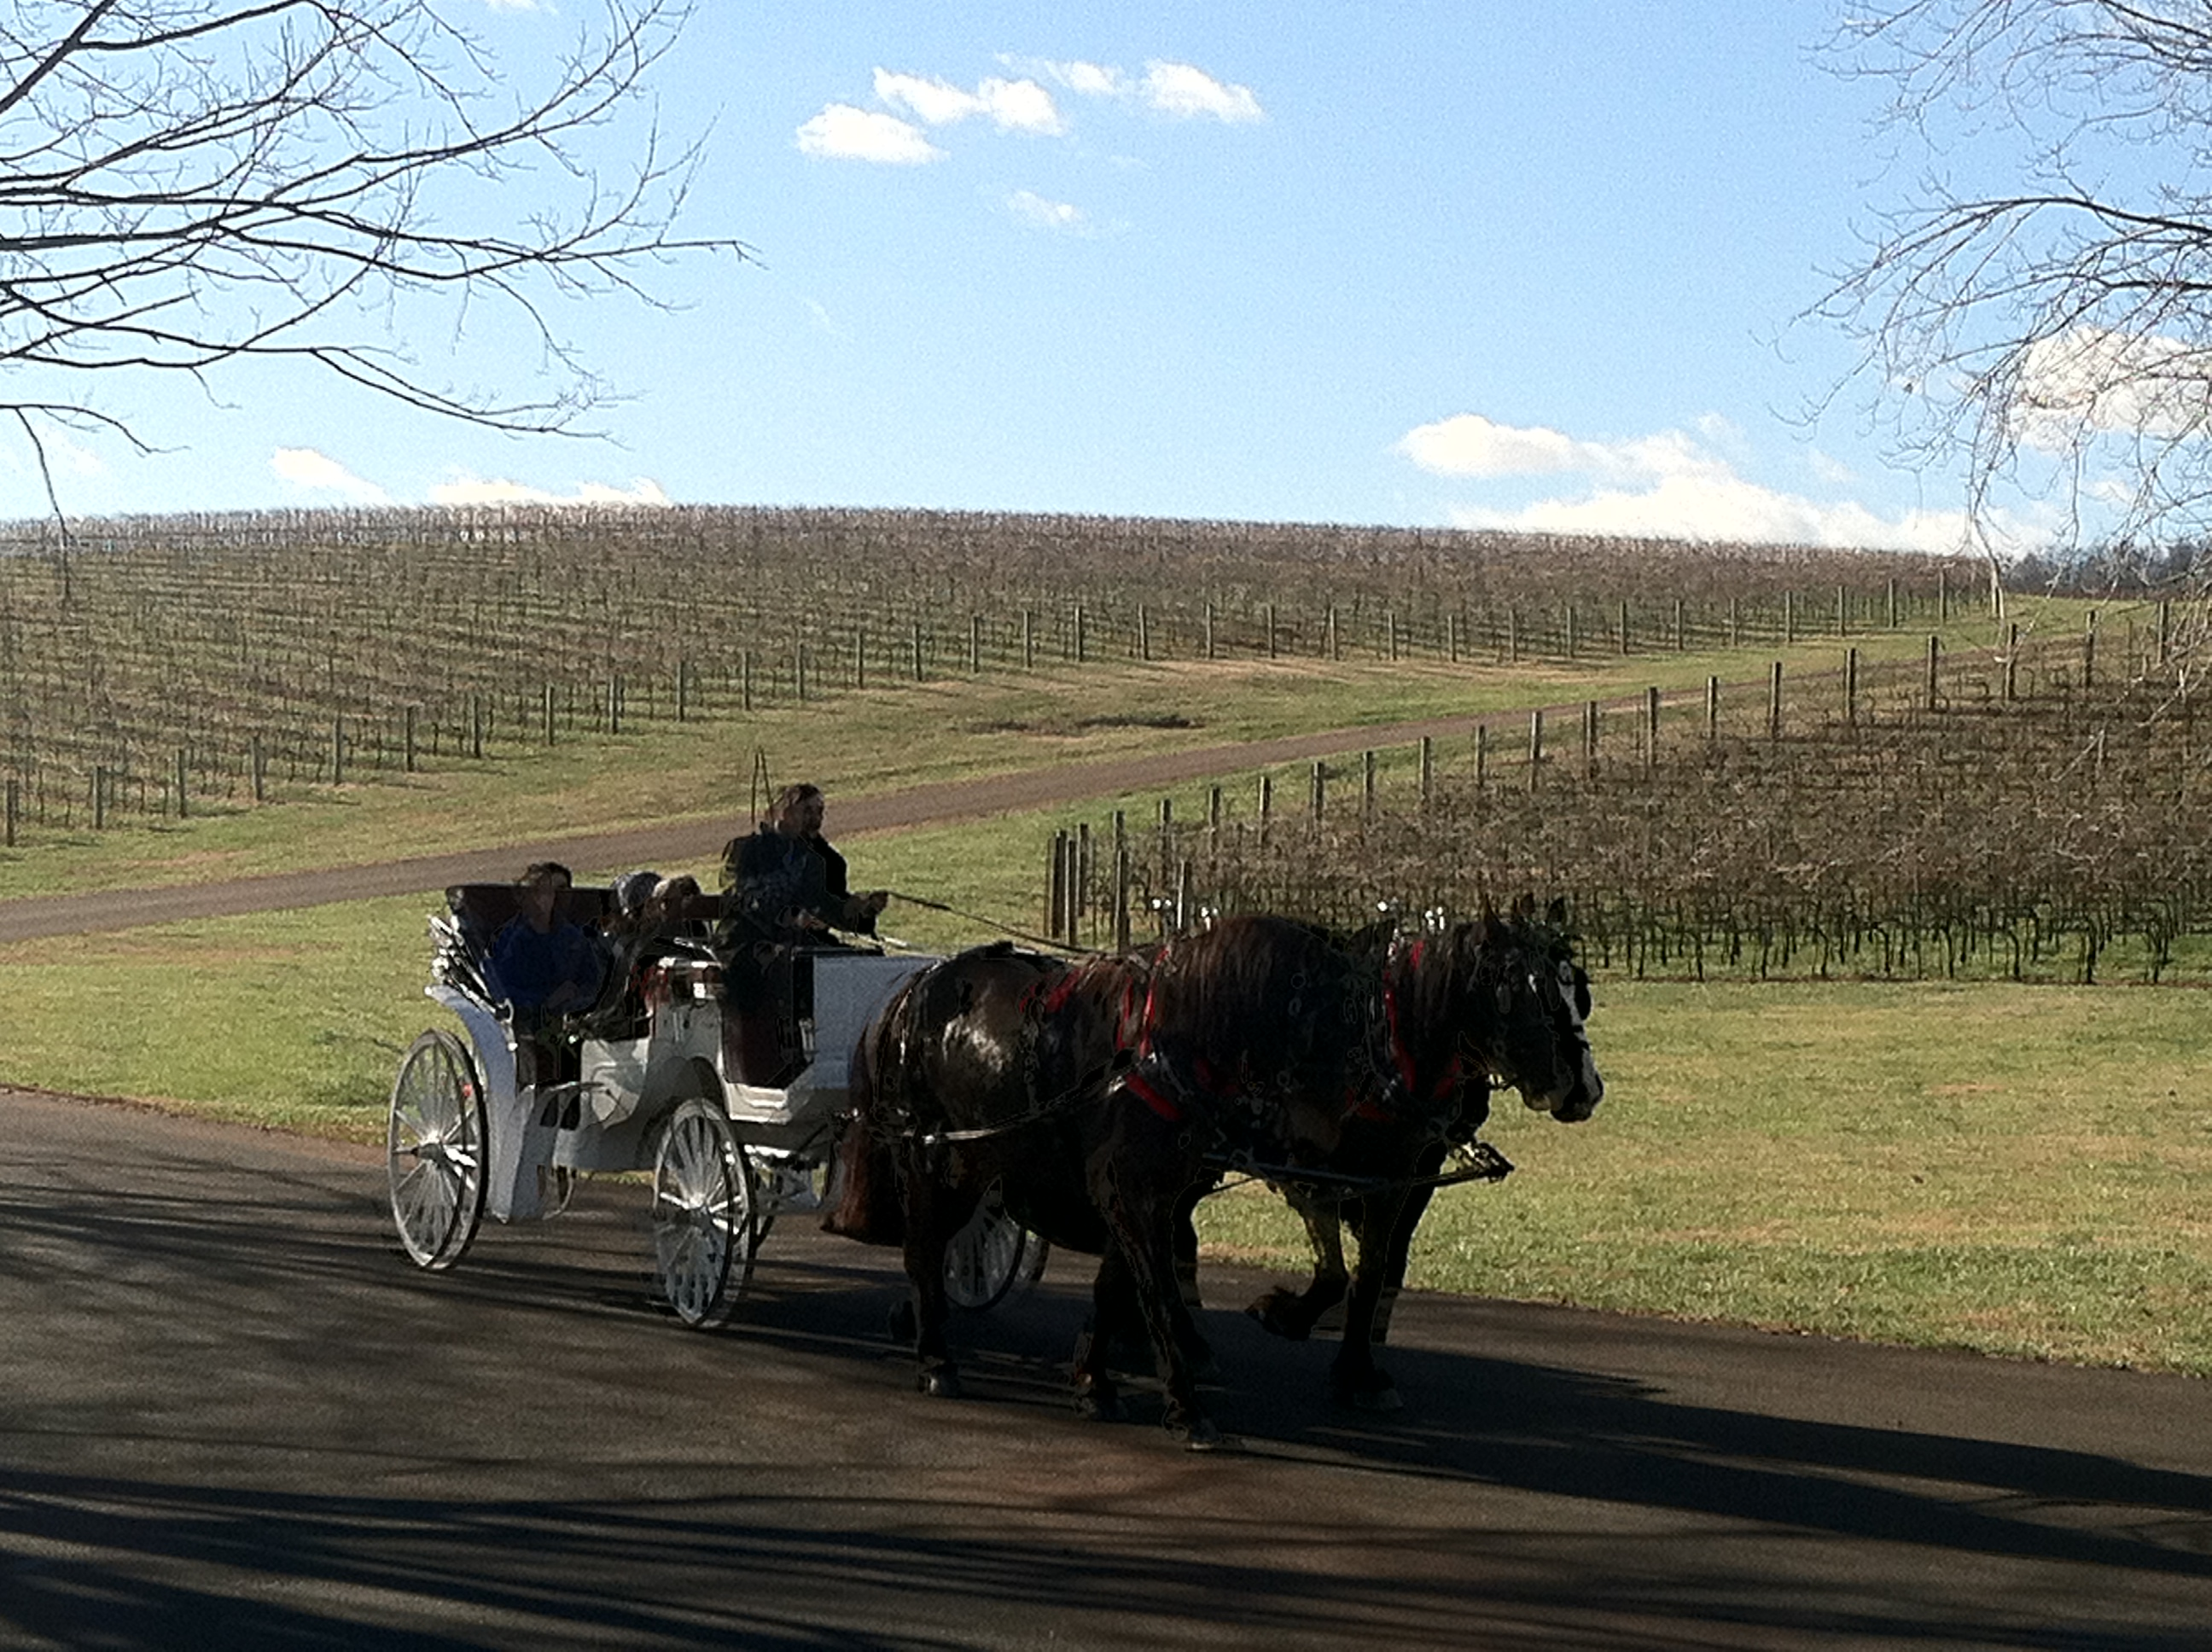 Trump Winery Offering Carriage Rides